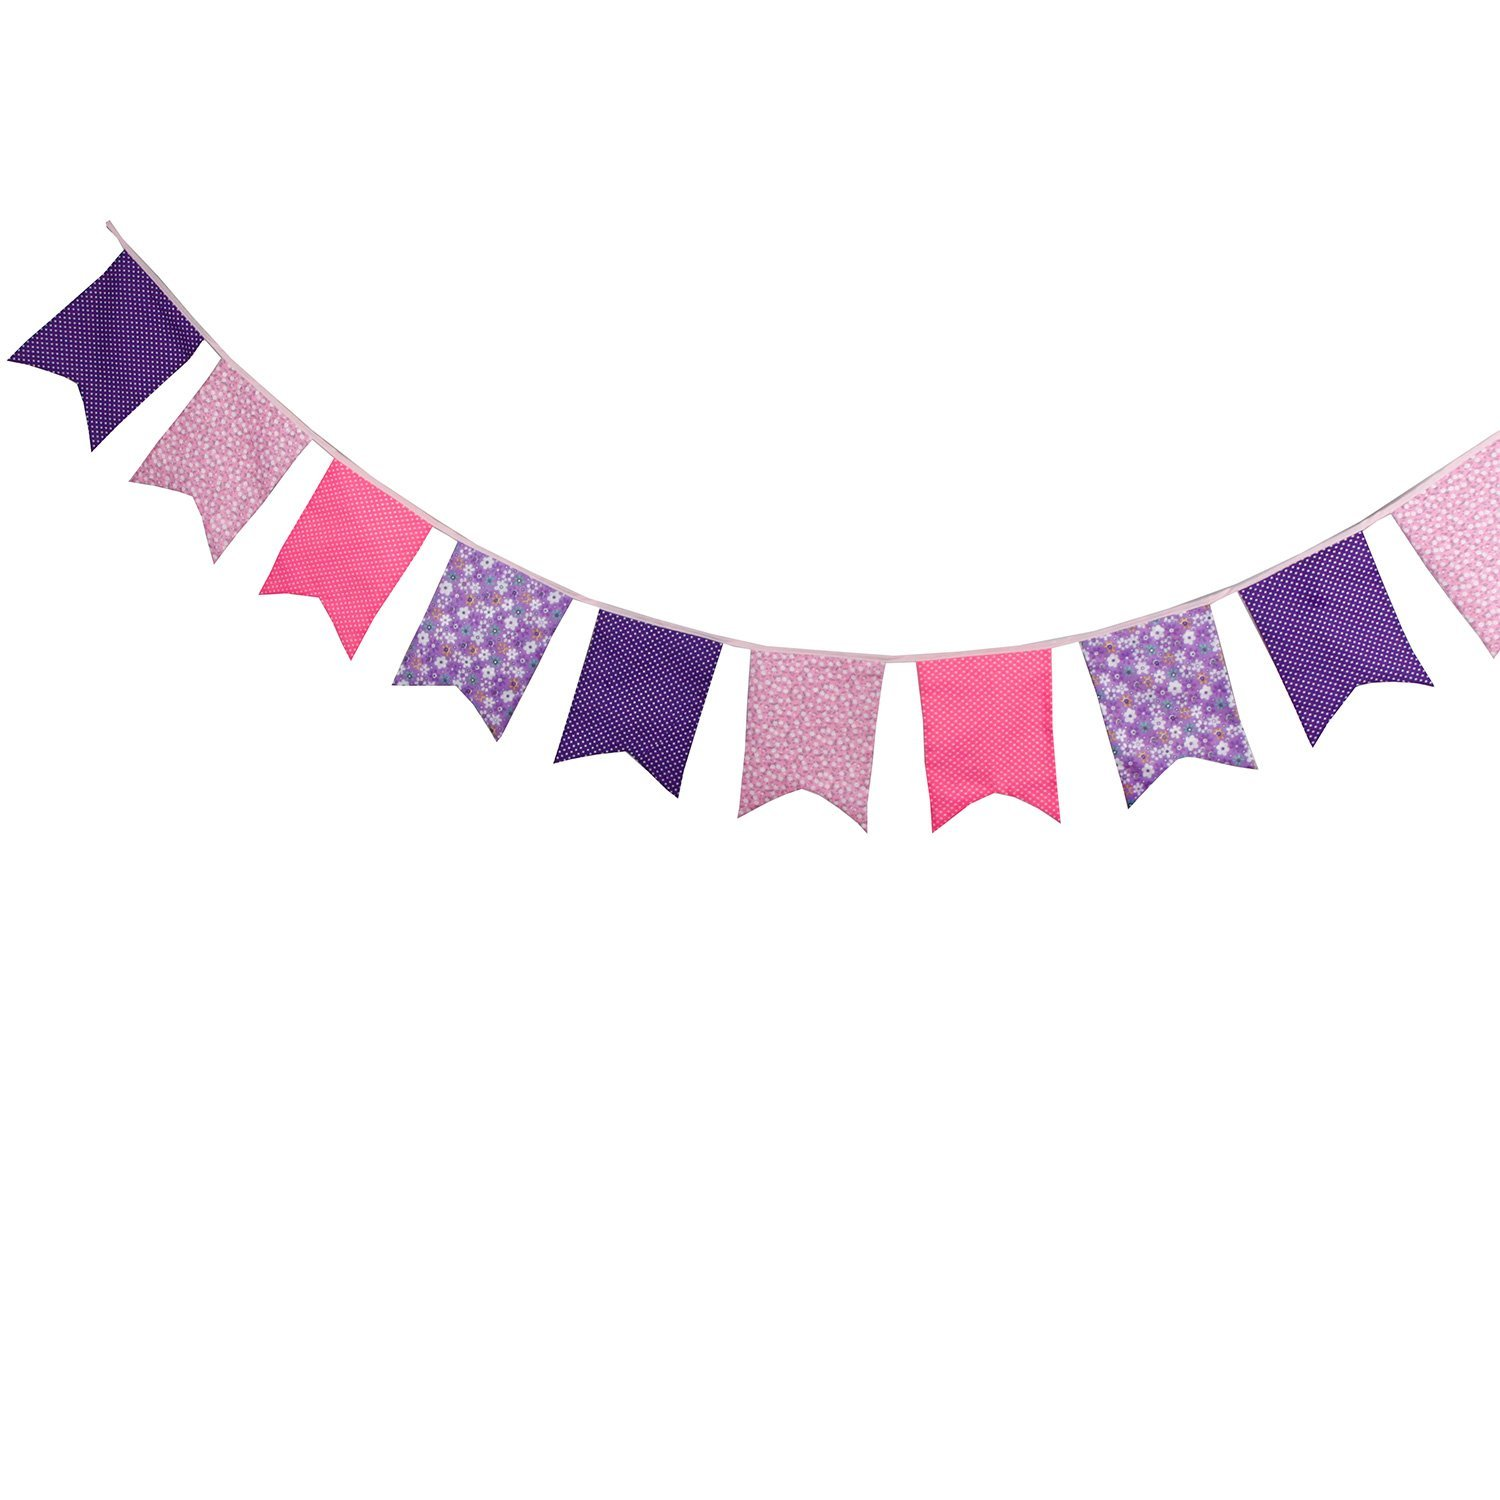 Blue INFEI 3.5M//11.5Ft Floral Vintage Fabric Big Fishtail Flags Bunting Banner Garlands for Wedding Outdoor /& Home Decoration Birthday Party